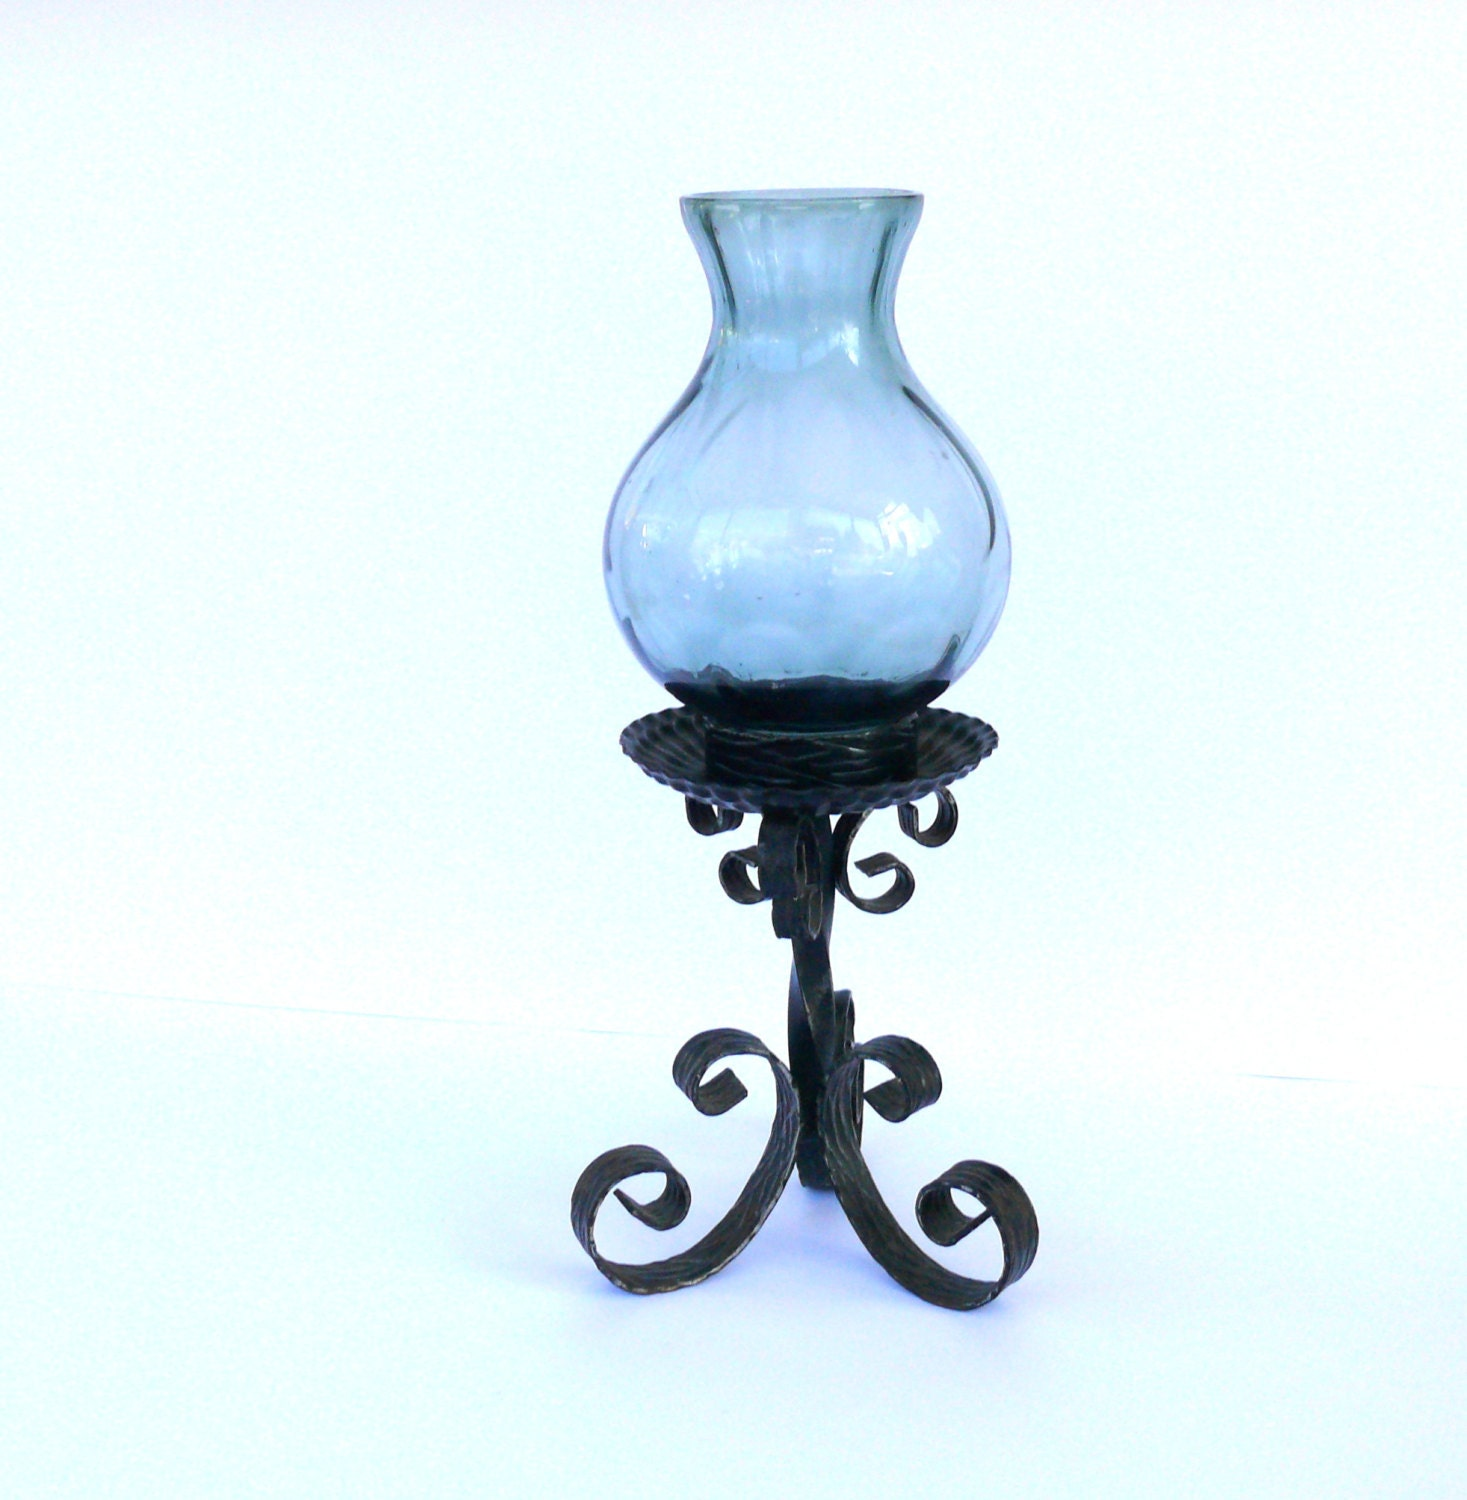 Vintage Rustic Wrought Iron Candle Holder Metal Candle Stick